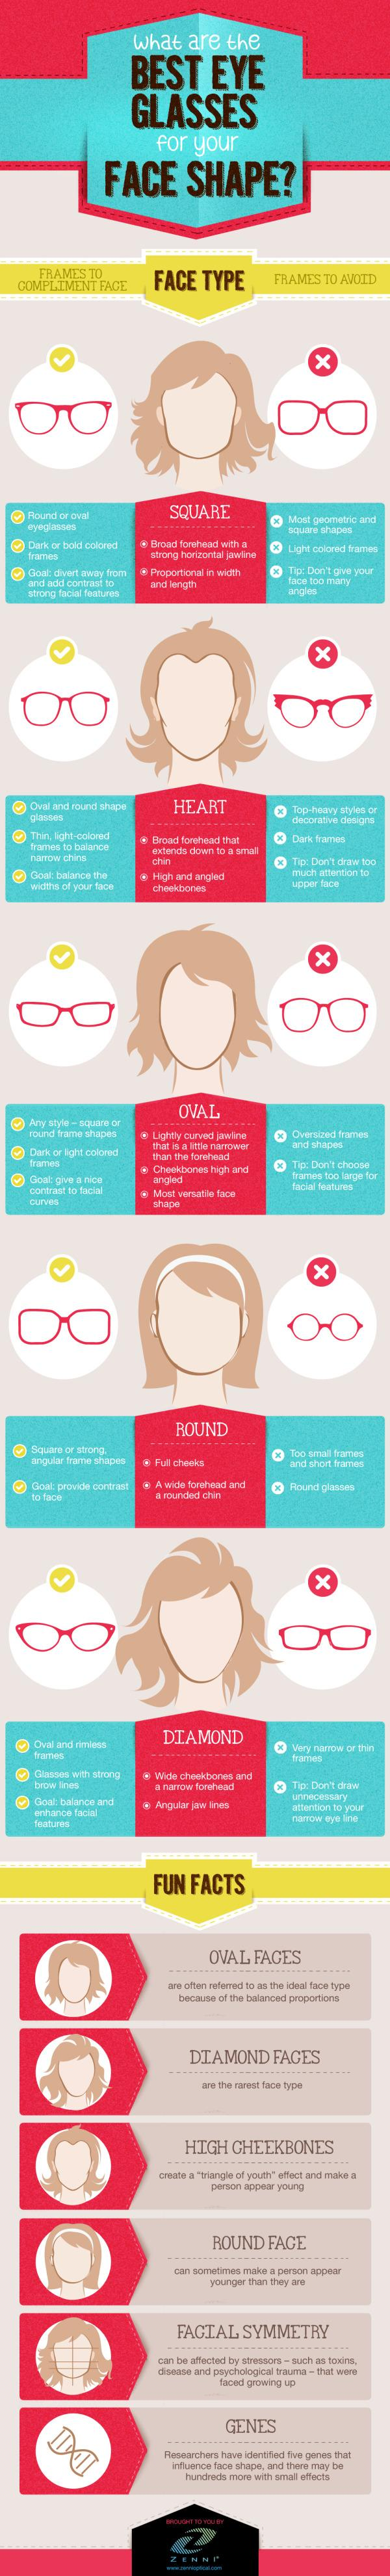 What are the Best Eyeglasses for Your Face Shape